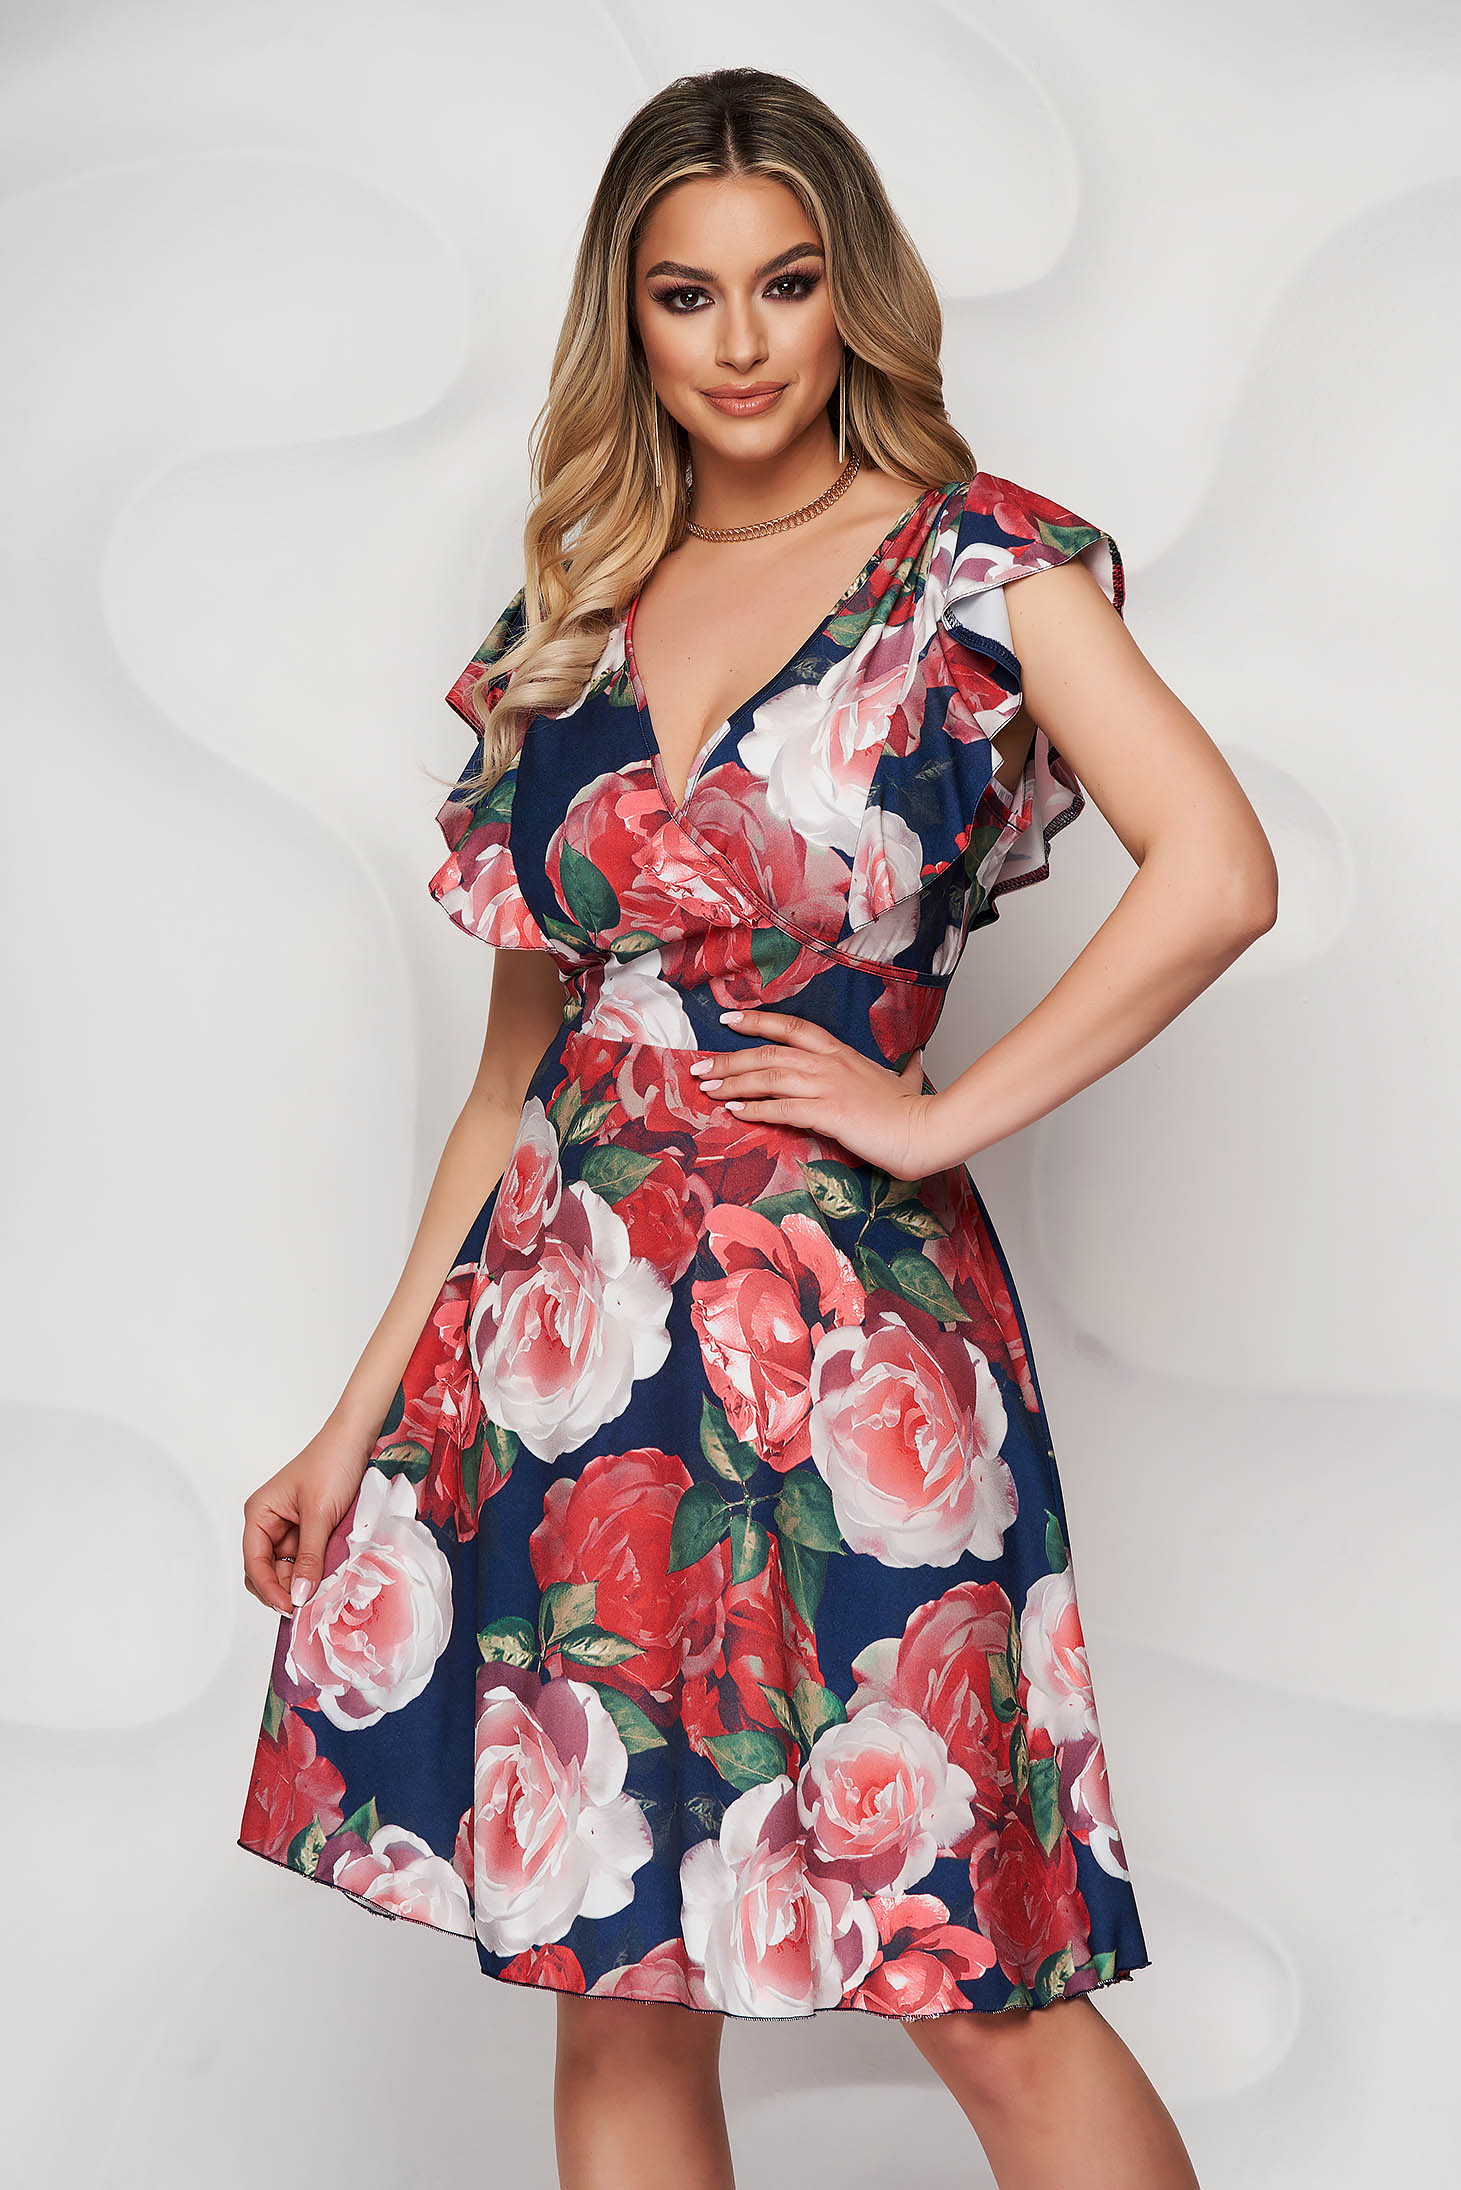 Darkblue dress with floral print cloche wrap over front with ruffle details